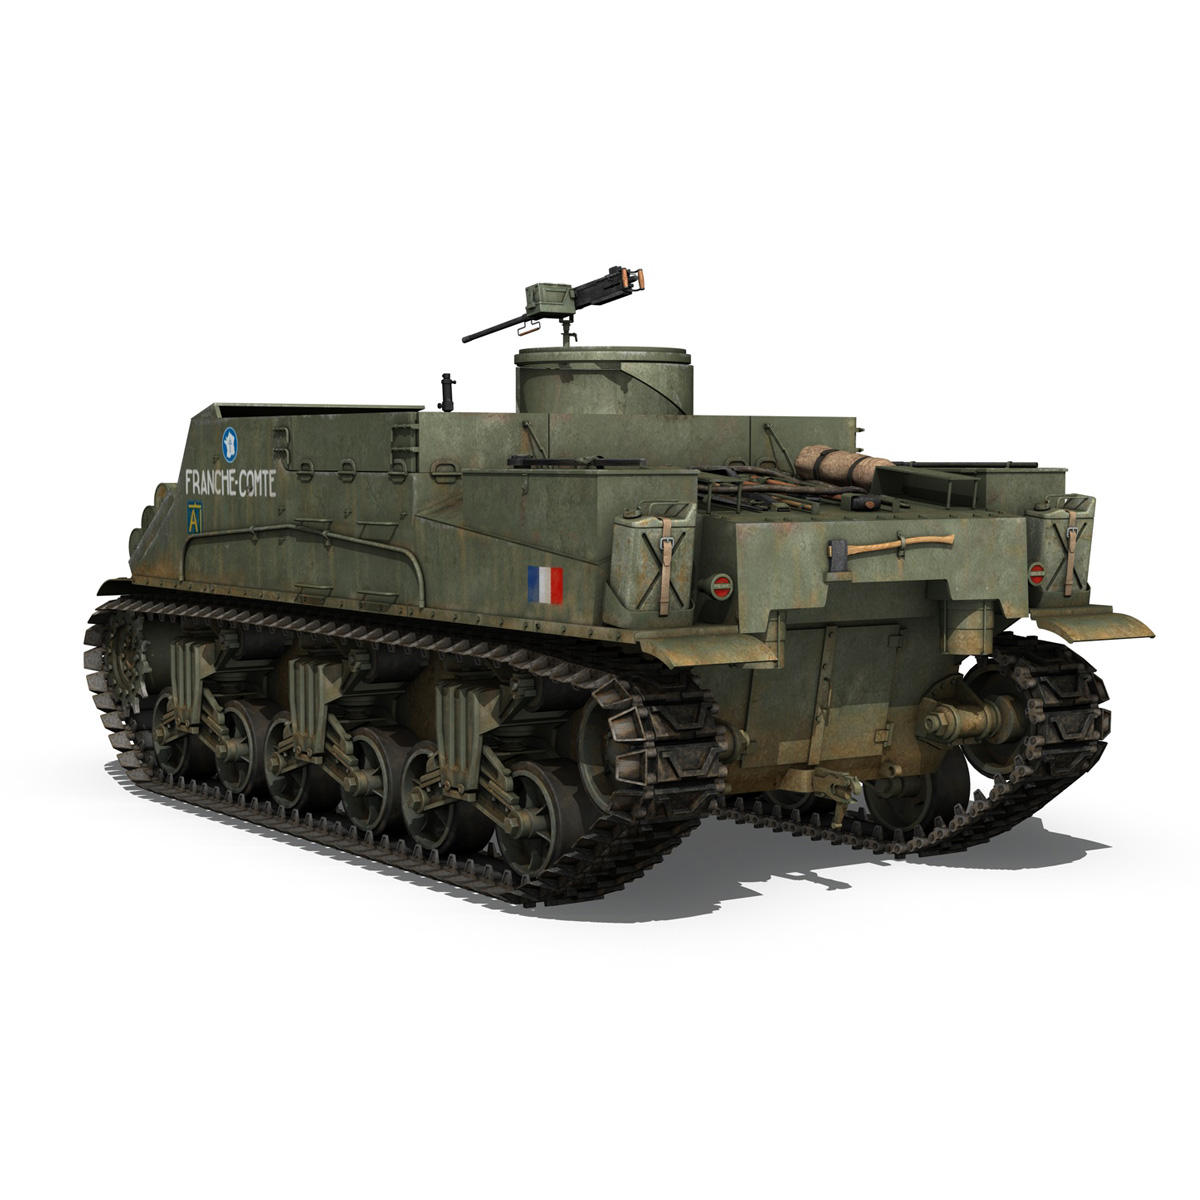 M7 Priest - Franche-Comte 3d model  265861